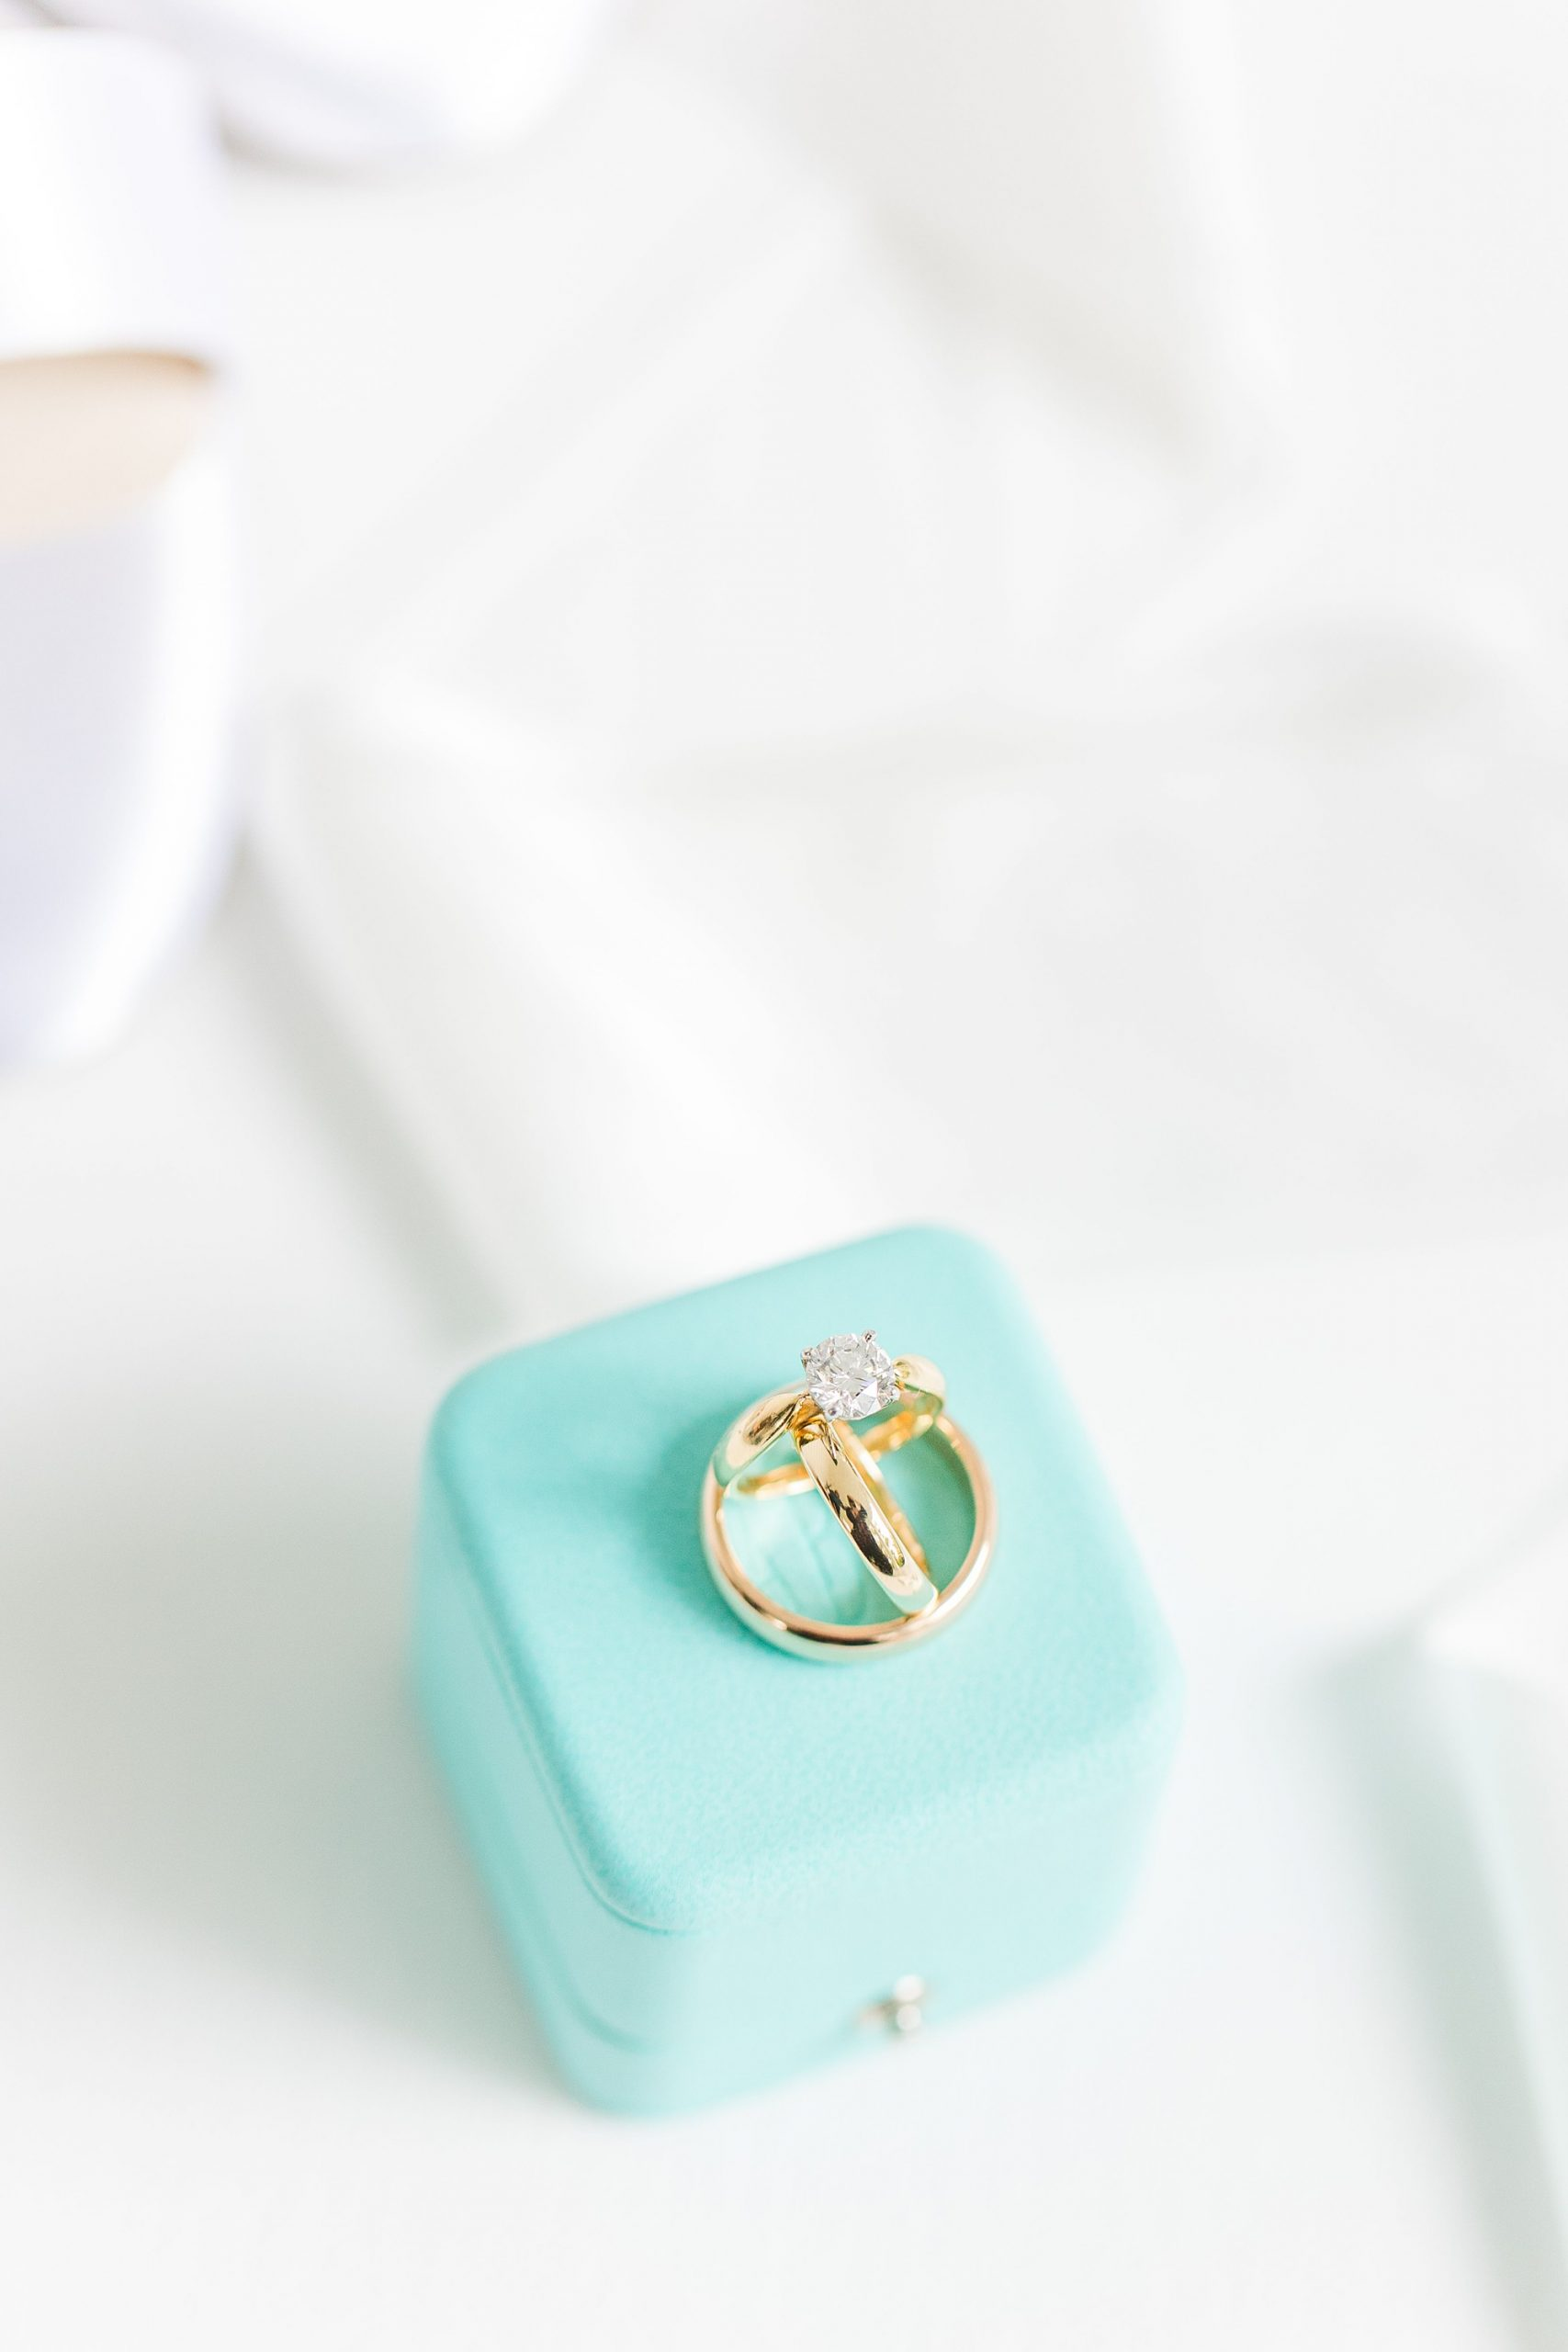 bride's Tiffany & Co. ring on teal box